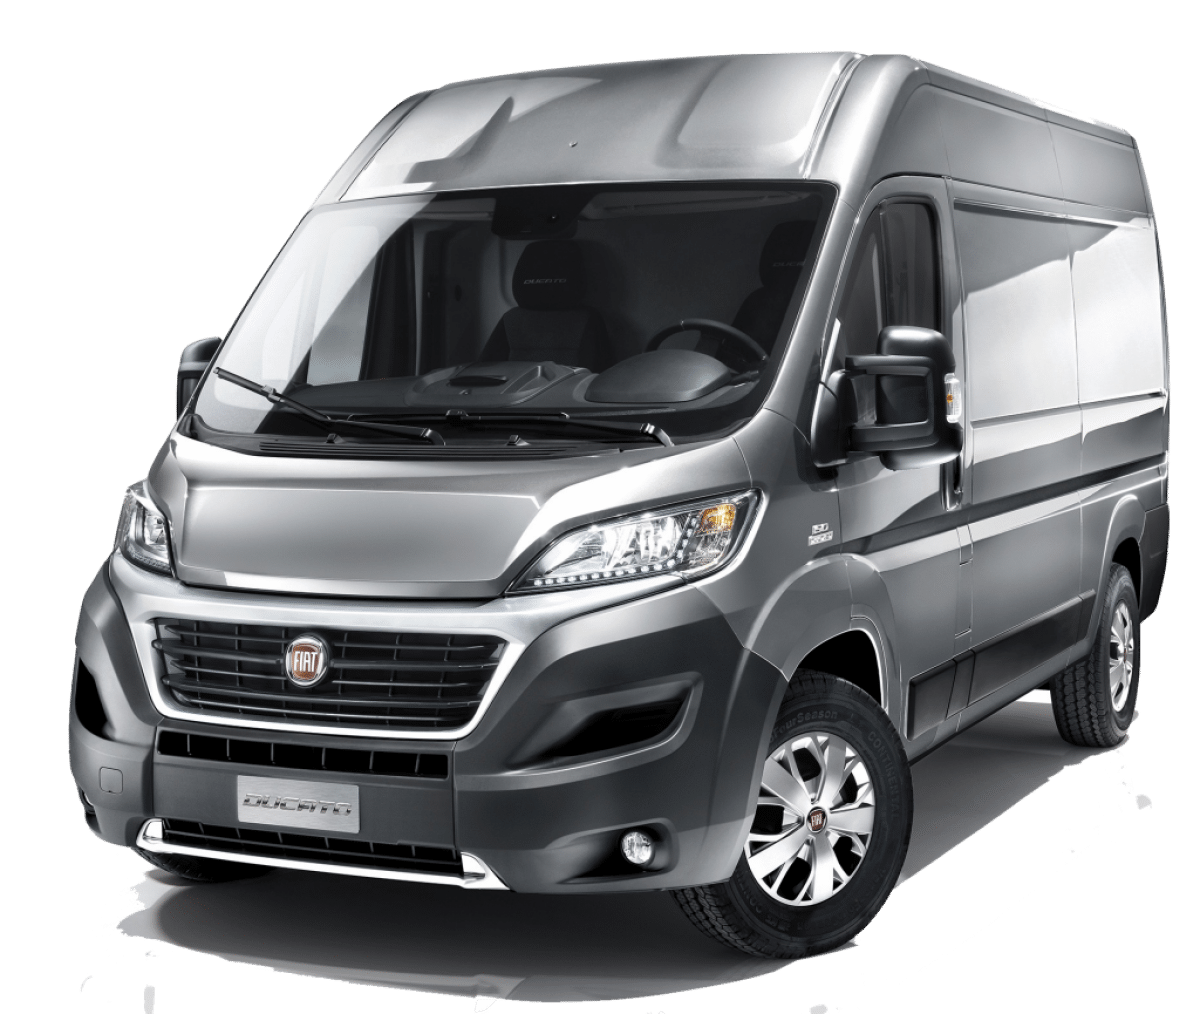 2018 fiat ducato 2 3td car 2018 fiat ducato car price engine full technical specifications. Black Bedroom Furniture Sets. Home Design Ideas